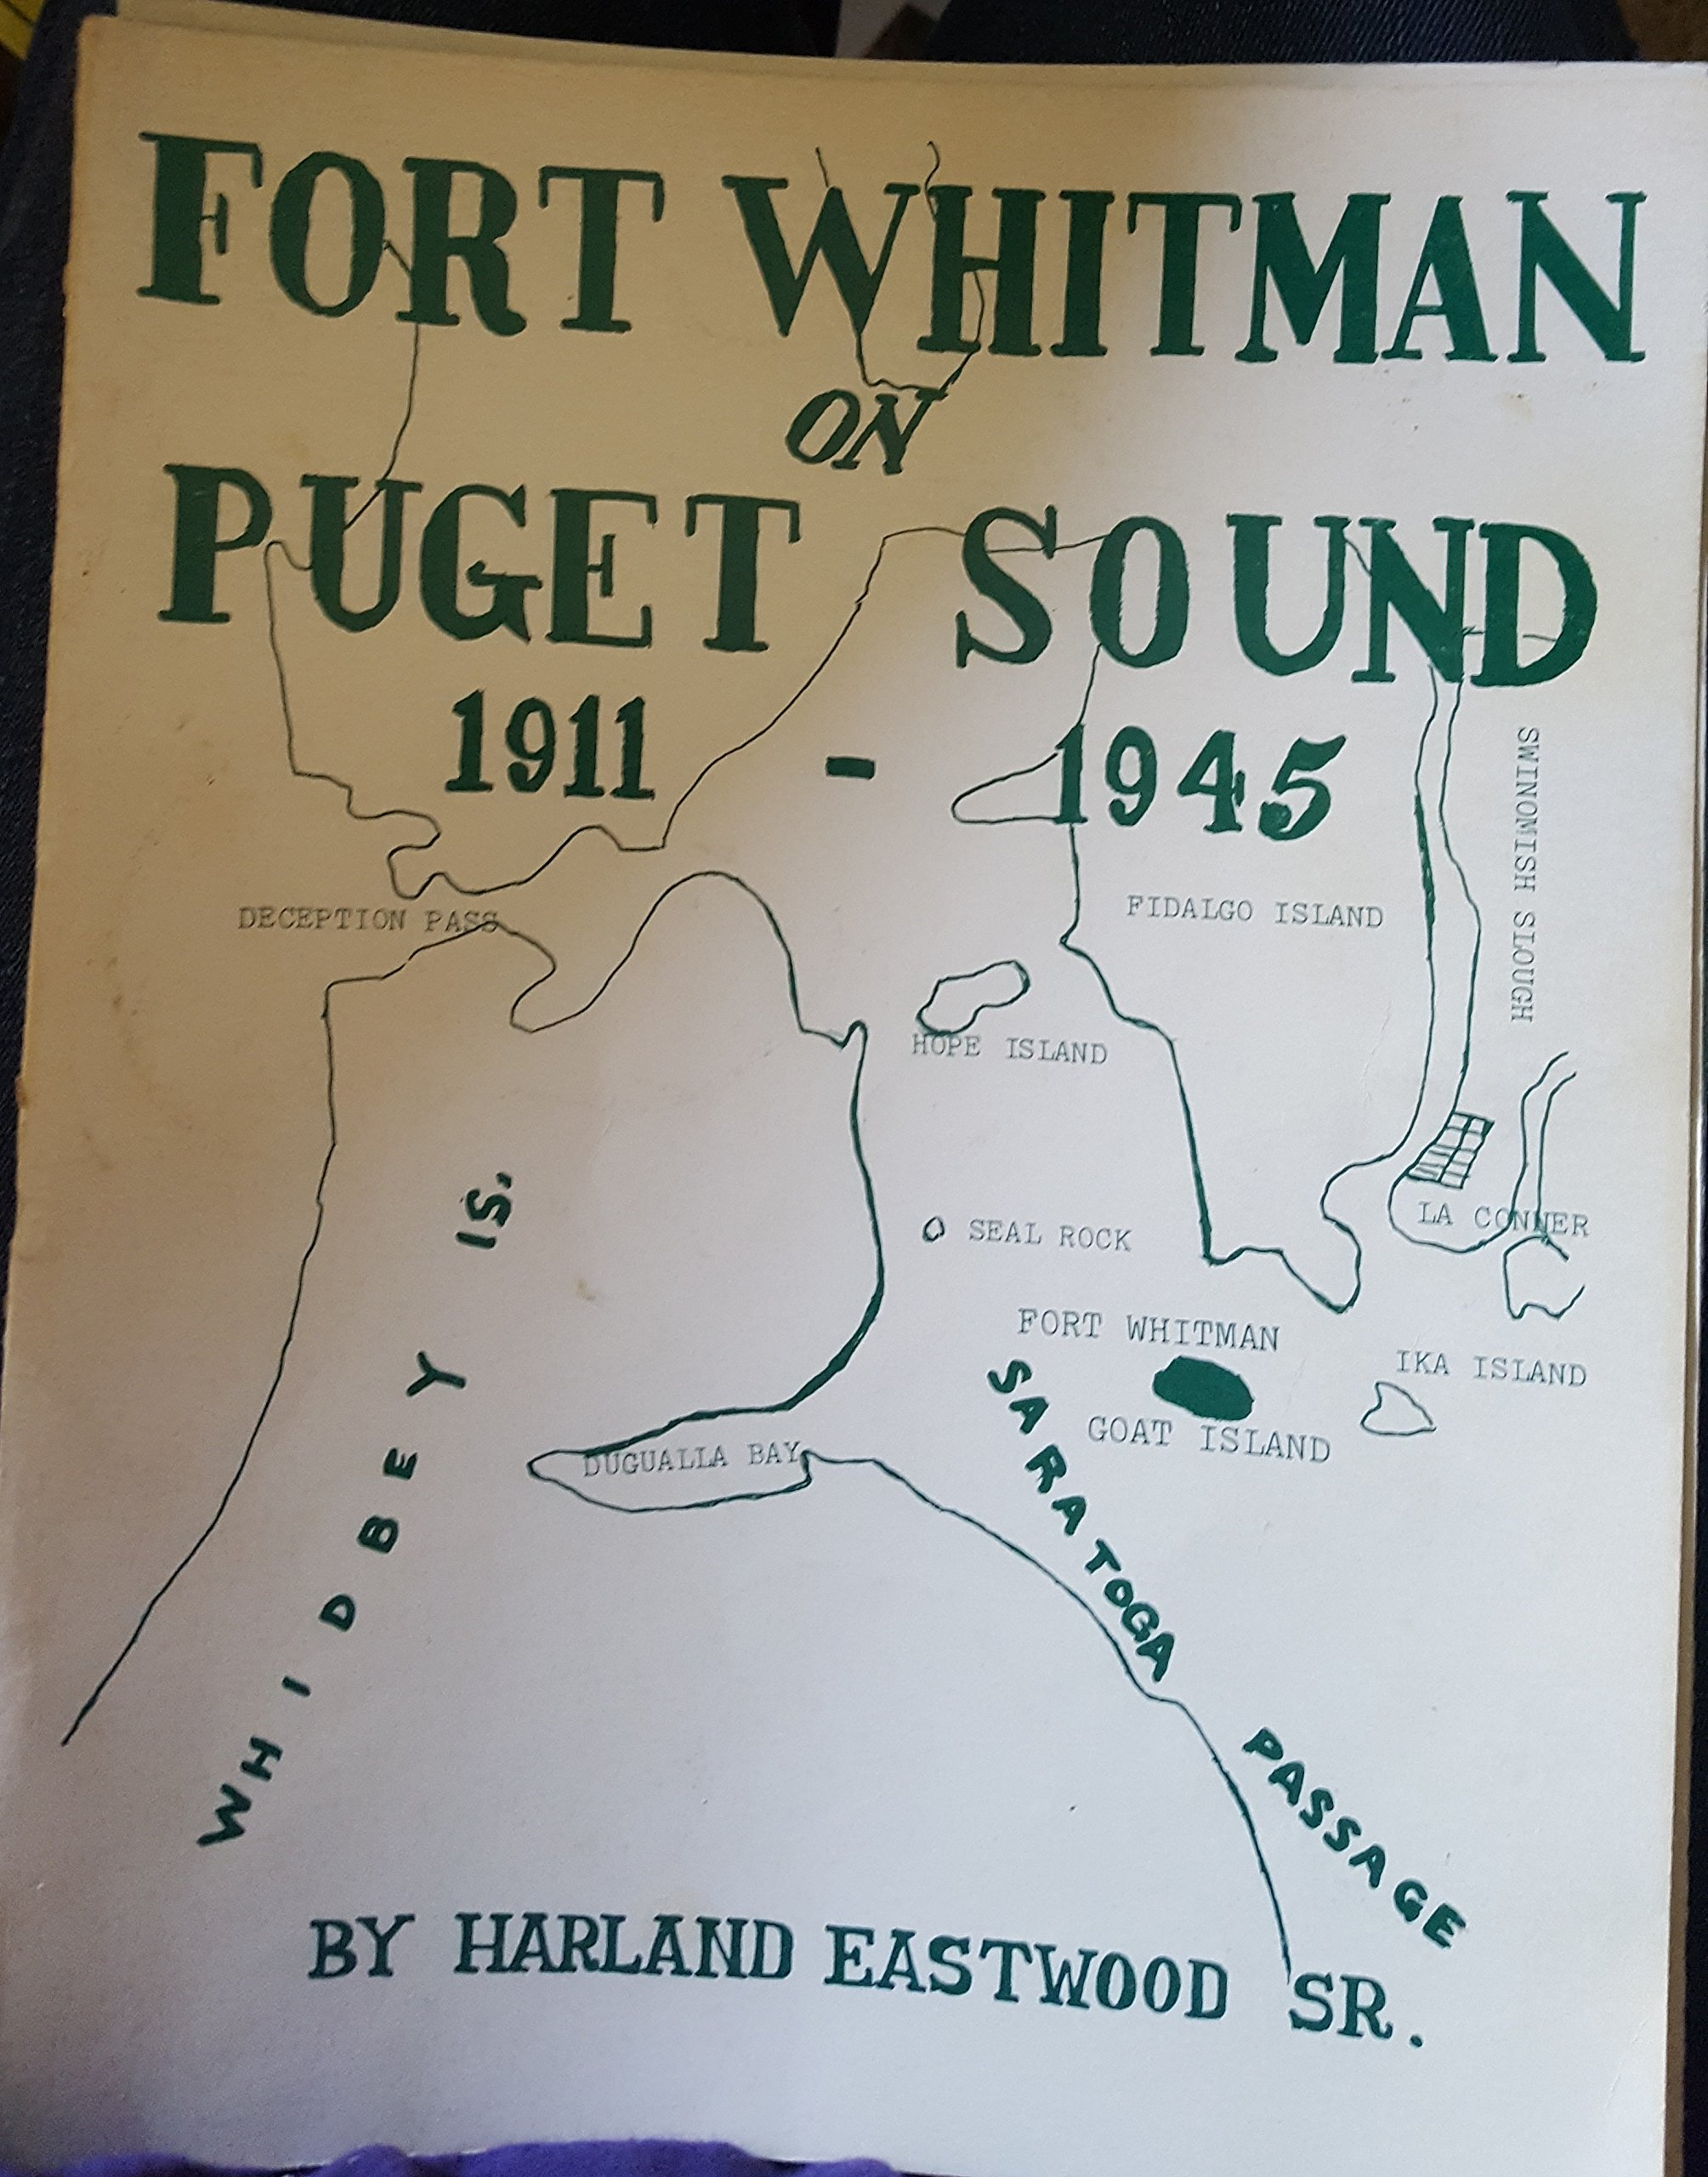 Fort Whitman on Puget Sound, 1911-1945, Eastwood, Harland